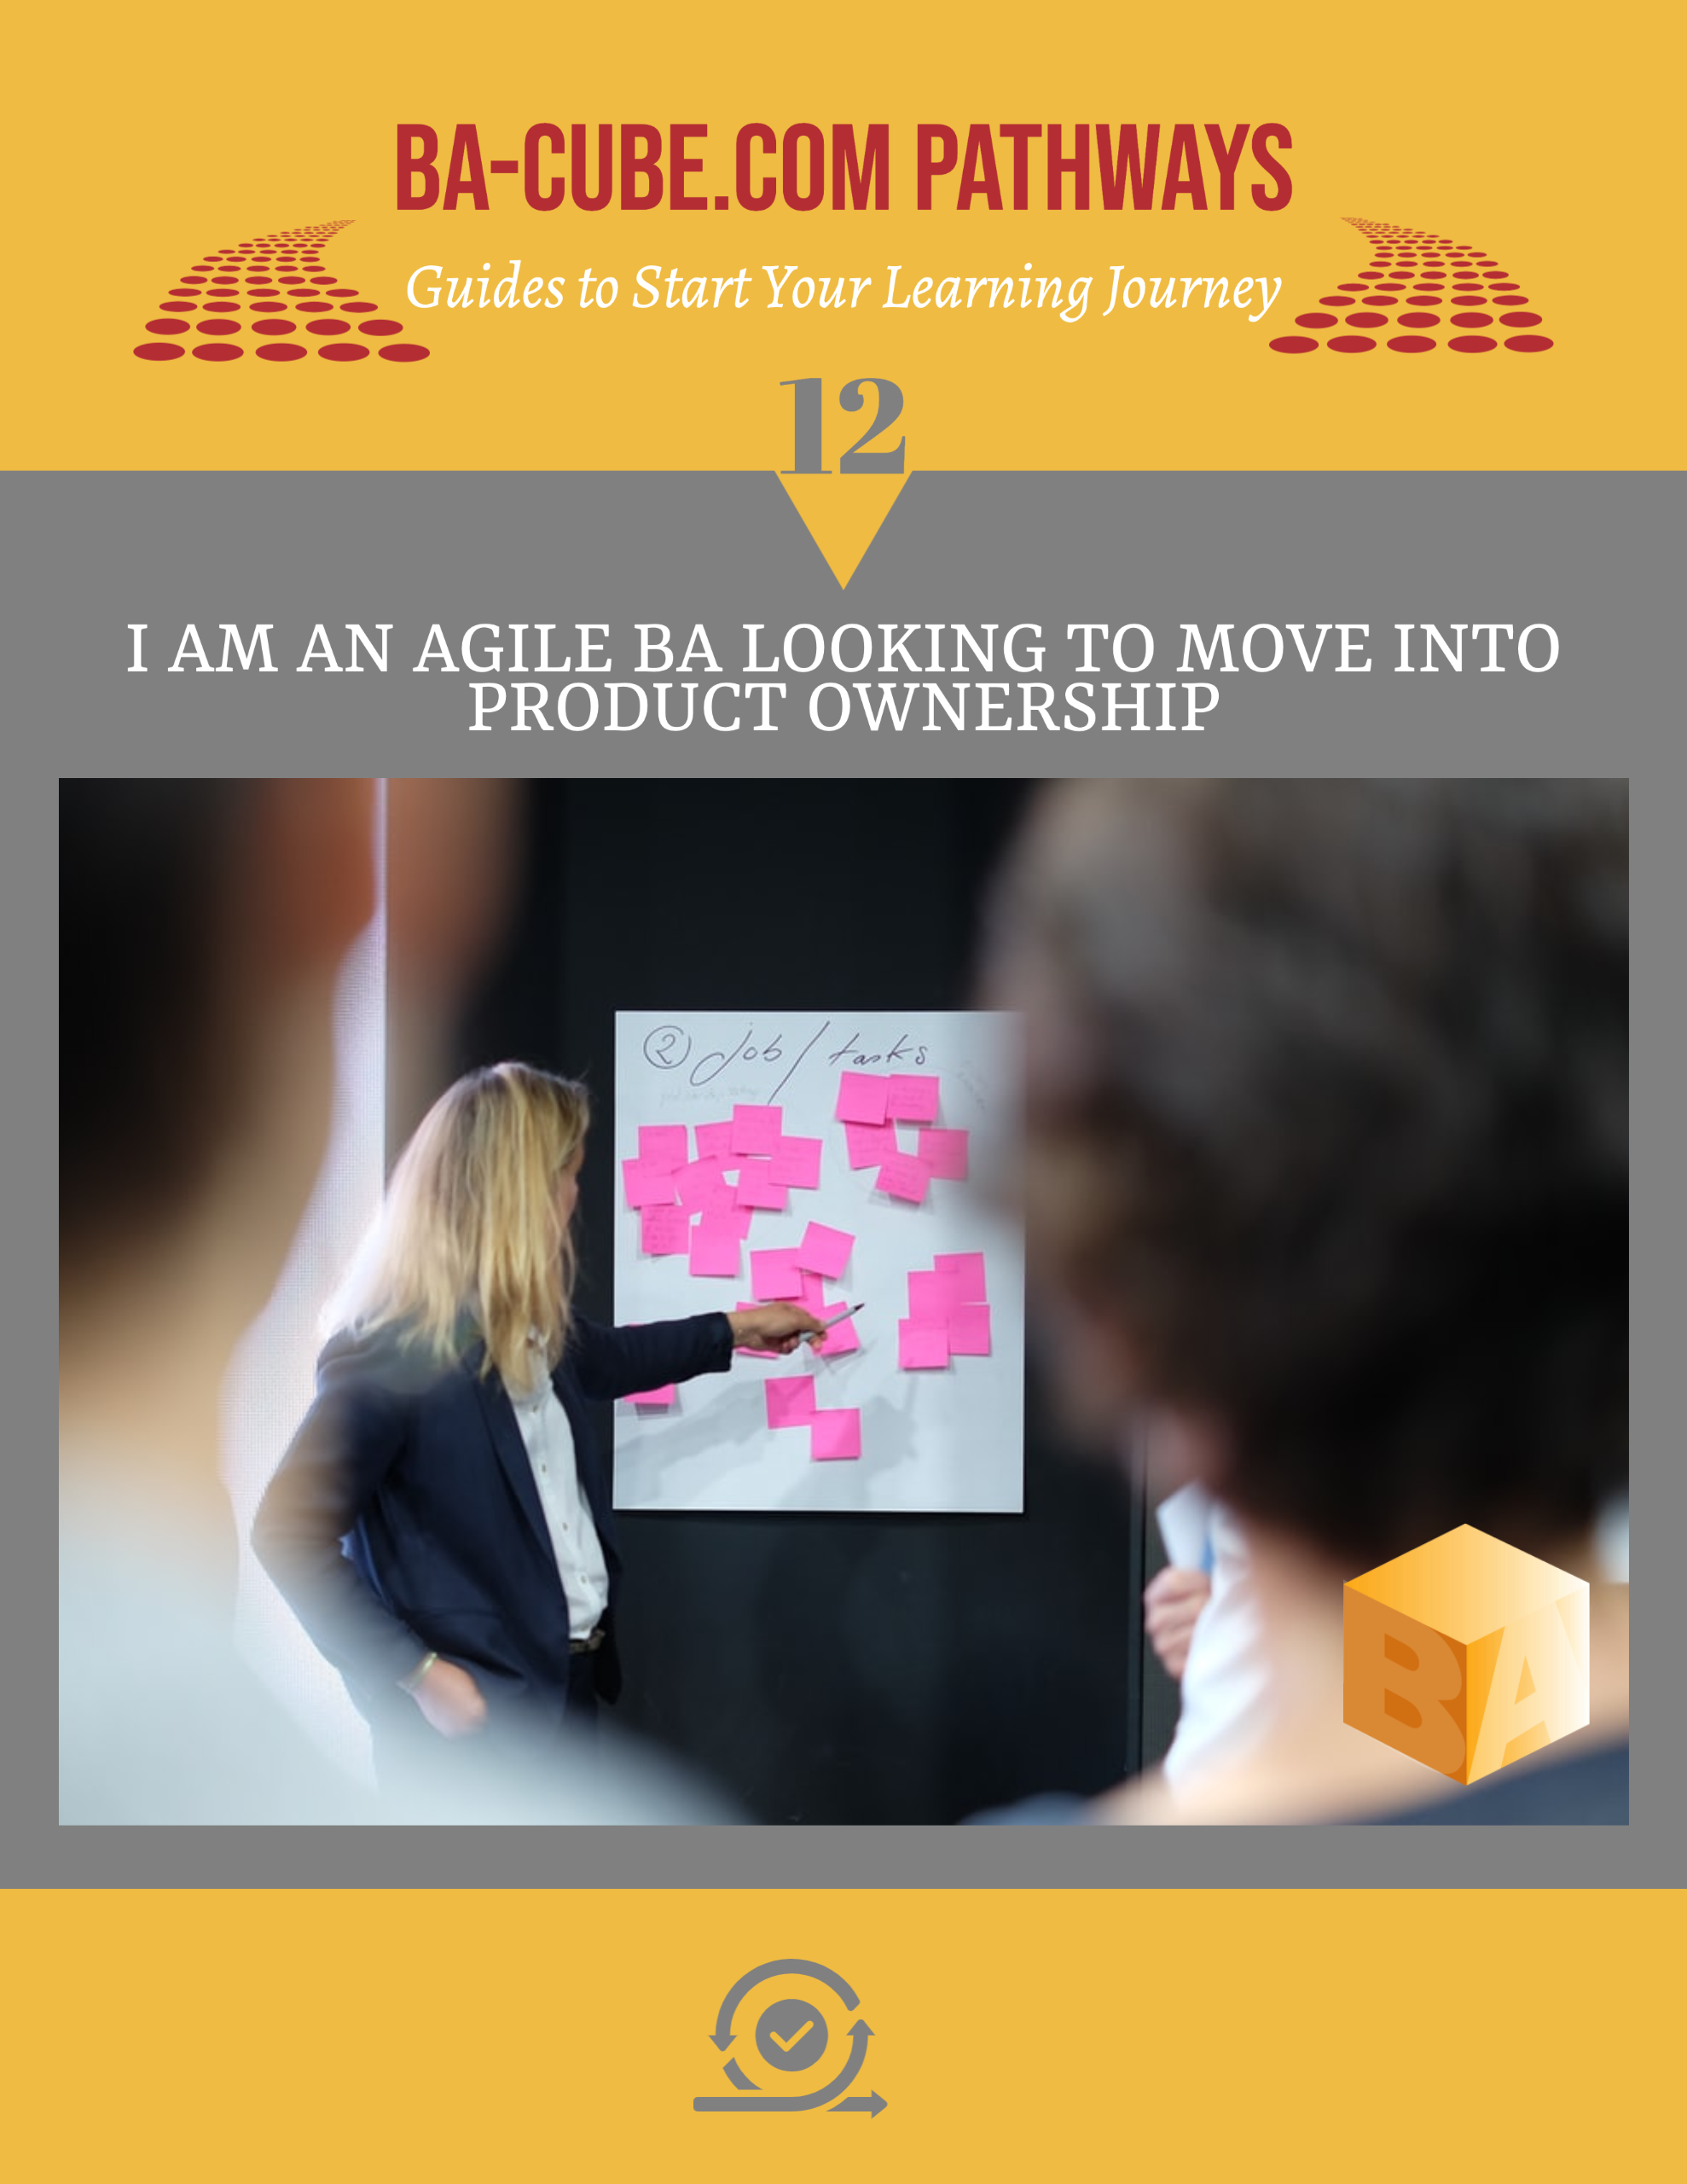 Pathway 12: I am an Agile BA Looking to Move into Product Ownership